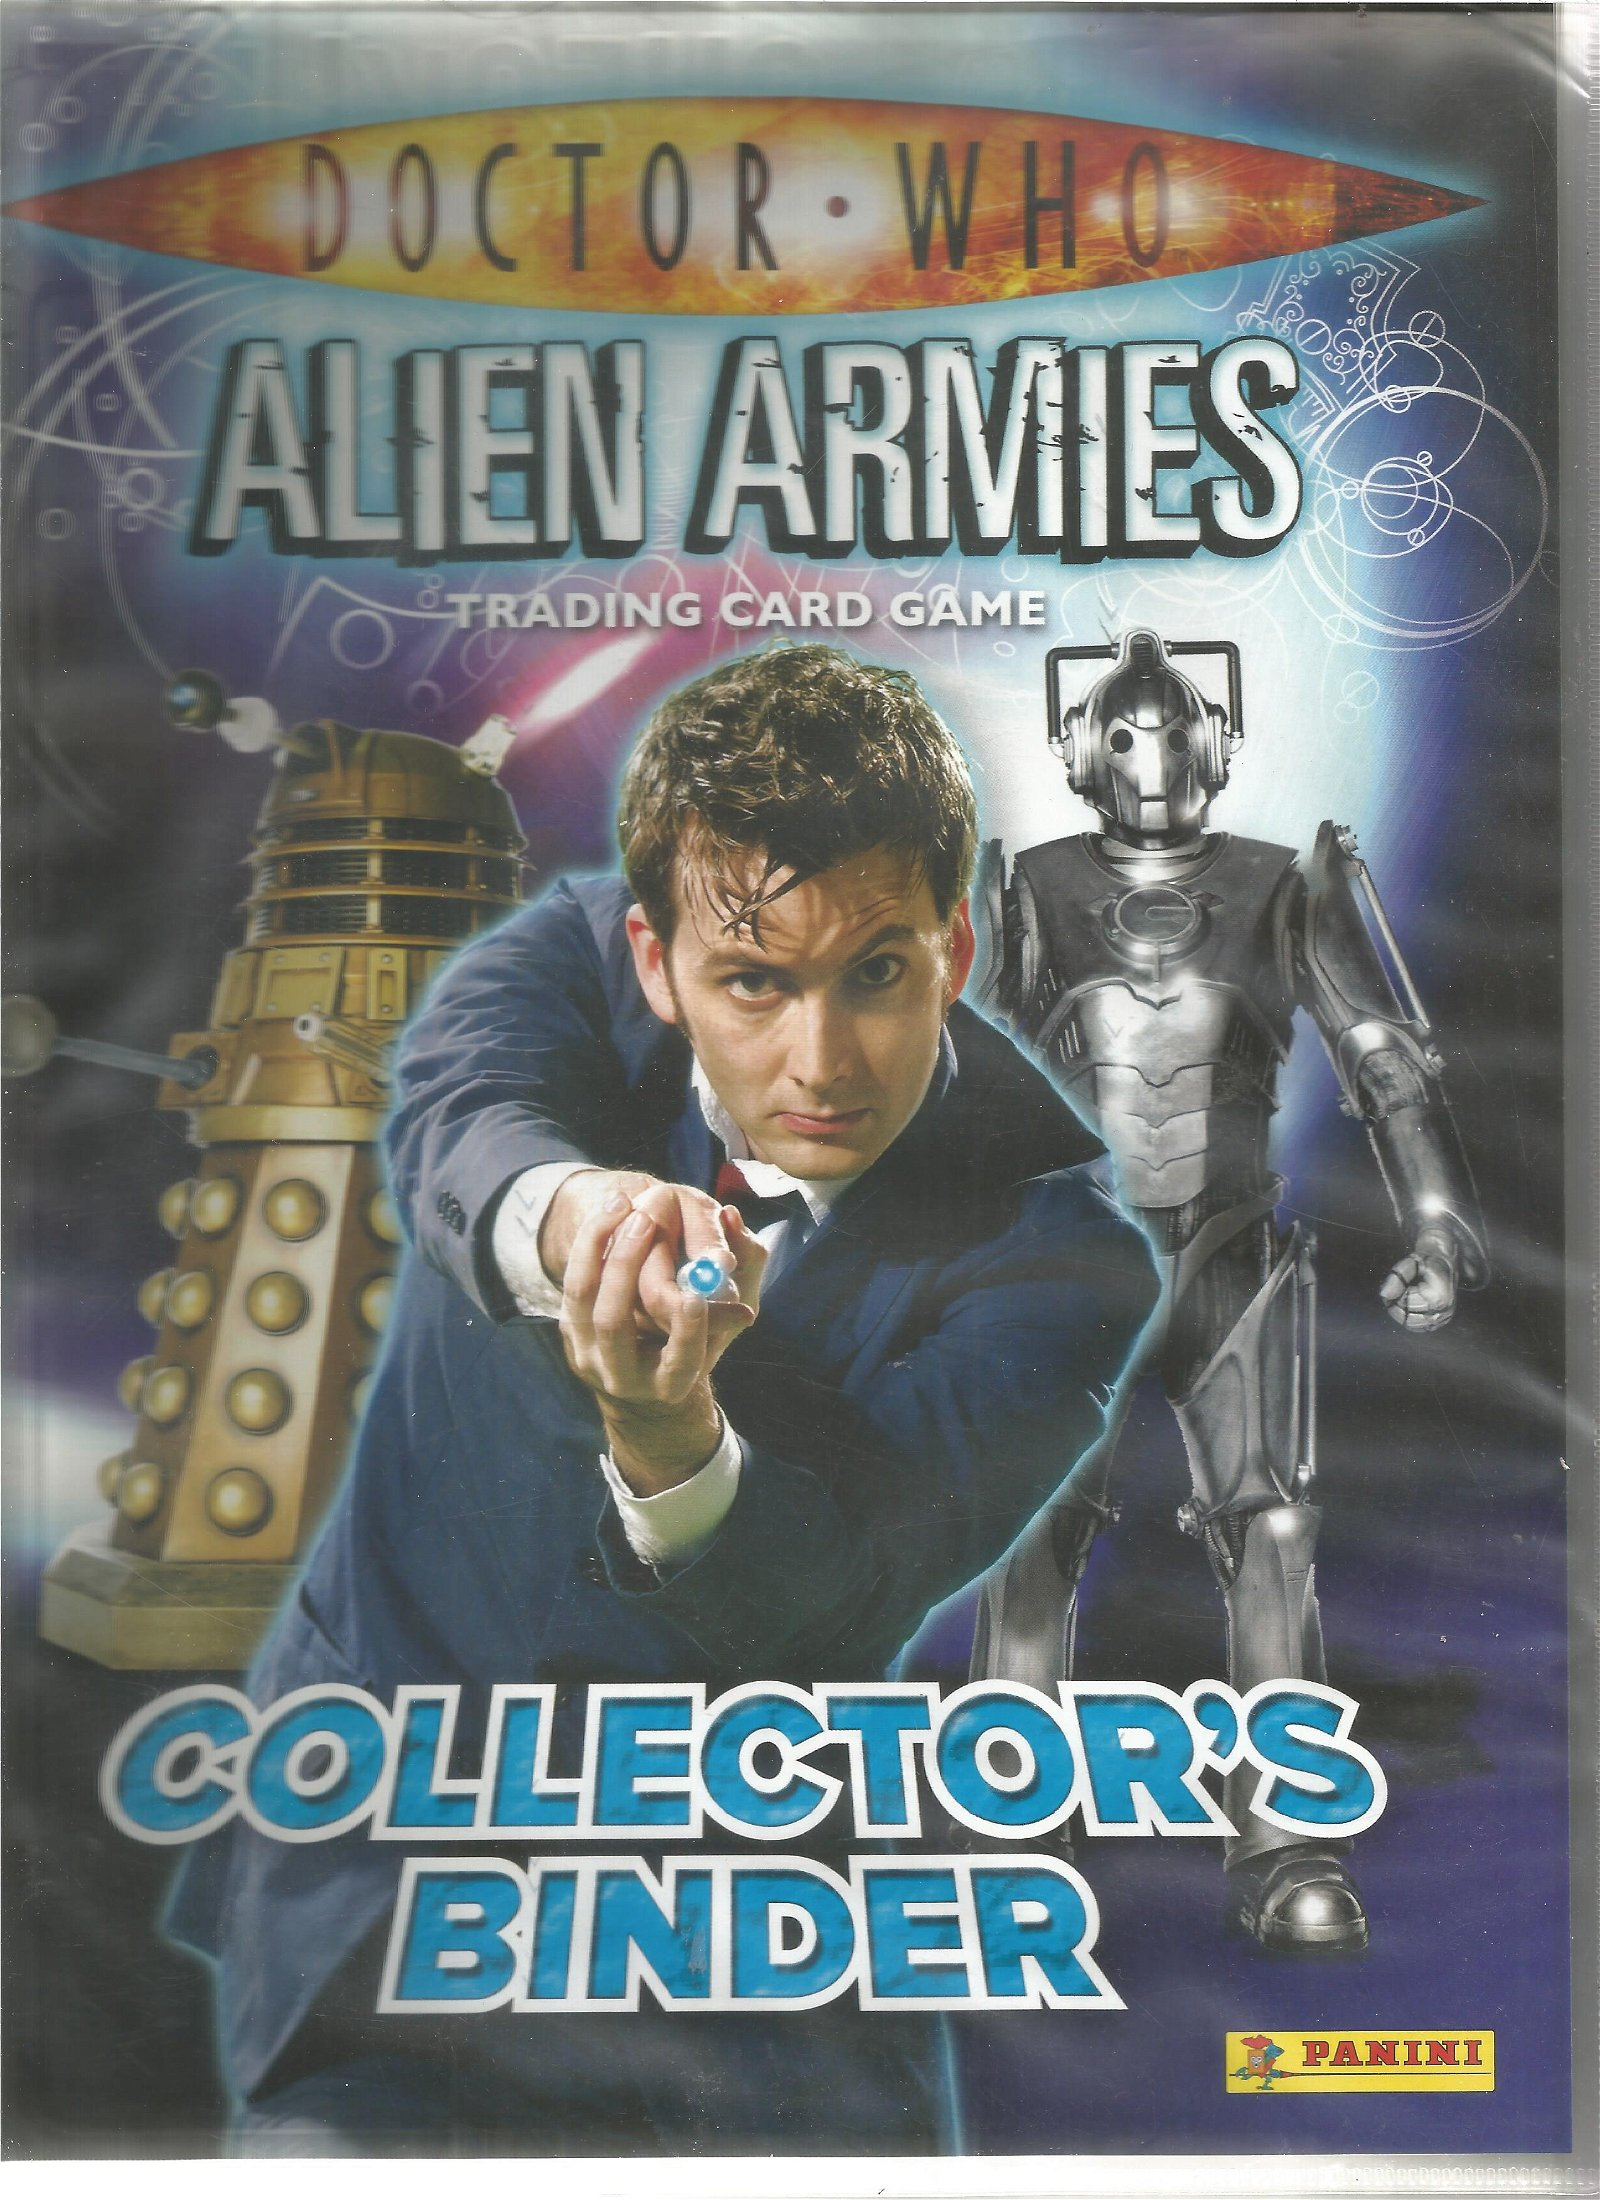 Doctor Who alien armies trading card collection in